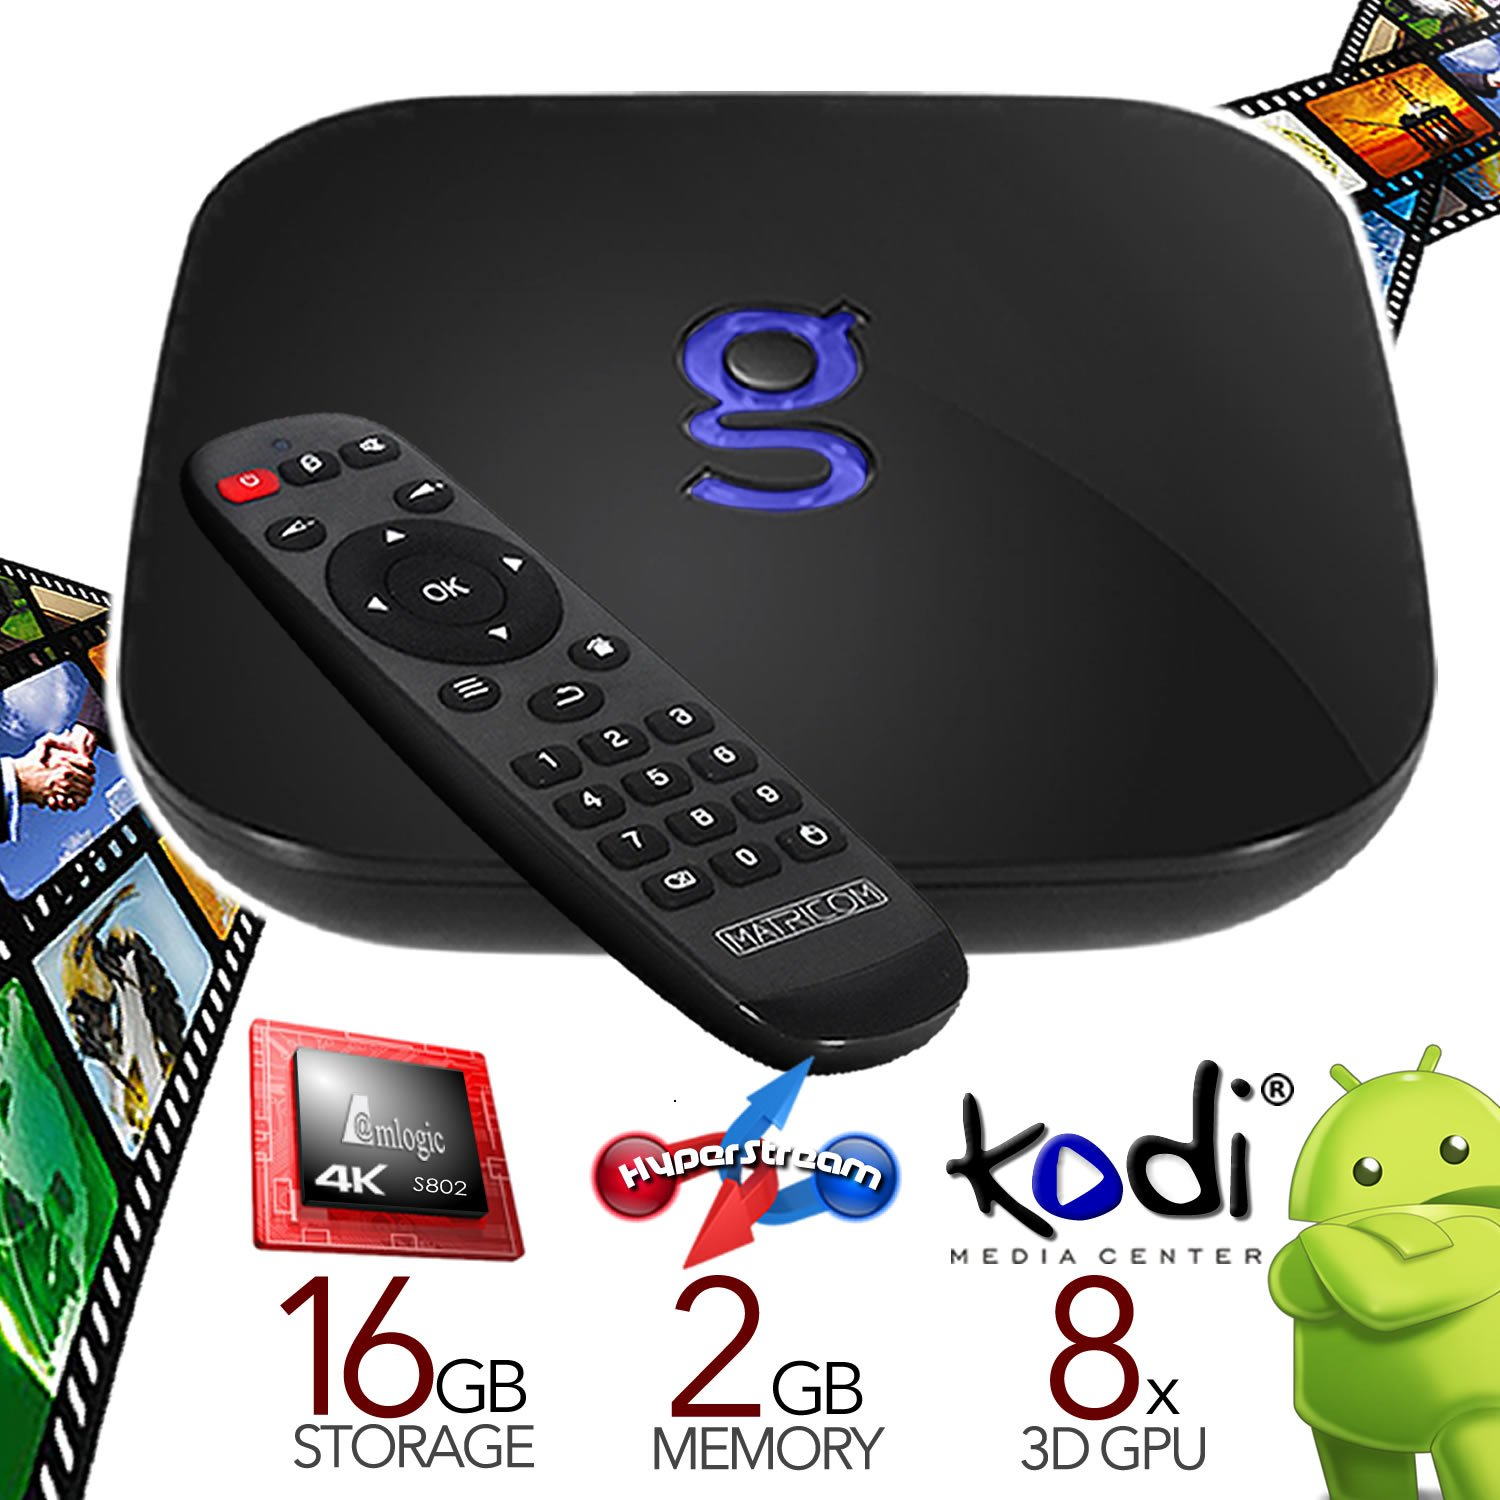 Matricom G-Box Q Quad/Octo Core XBMC/Kodi Android TV Box (2GB/16GB/4K)